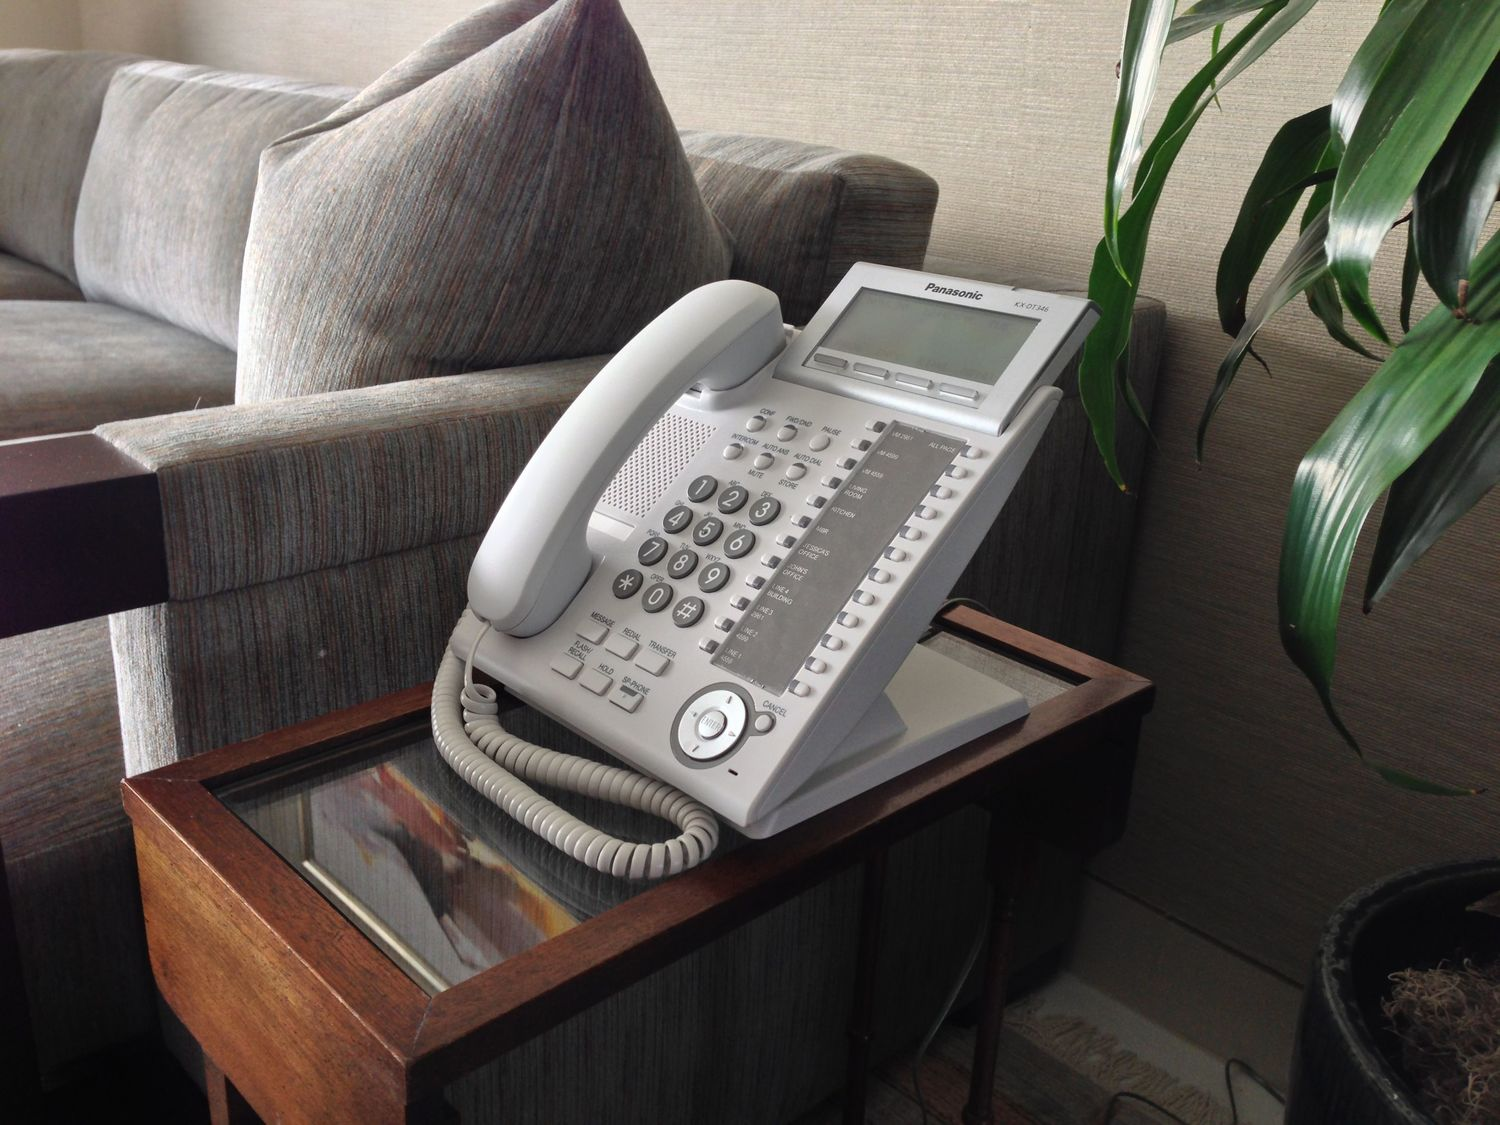 The apartment's phone system is by Panasonic, chosen by us because it is simple for the end user, but also full of features.